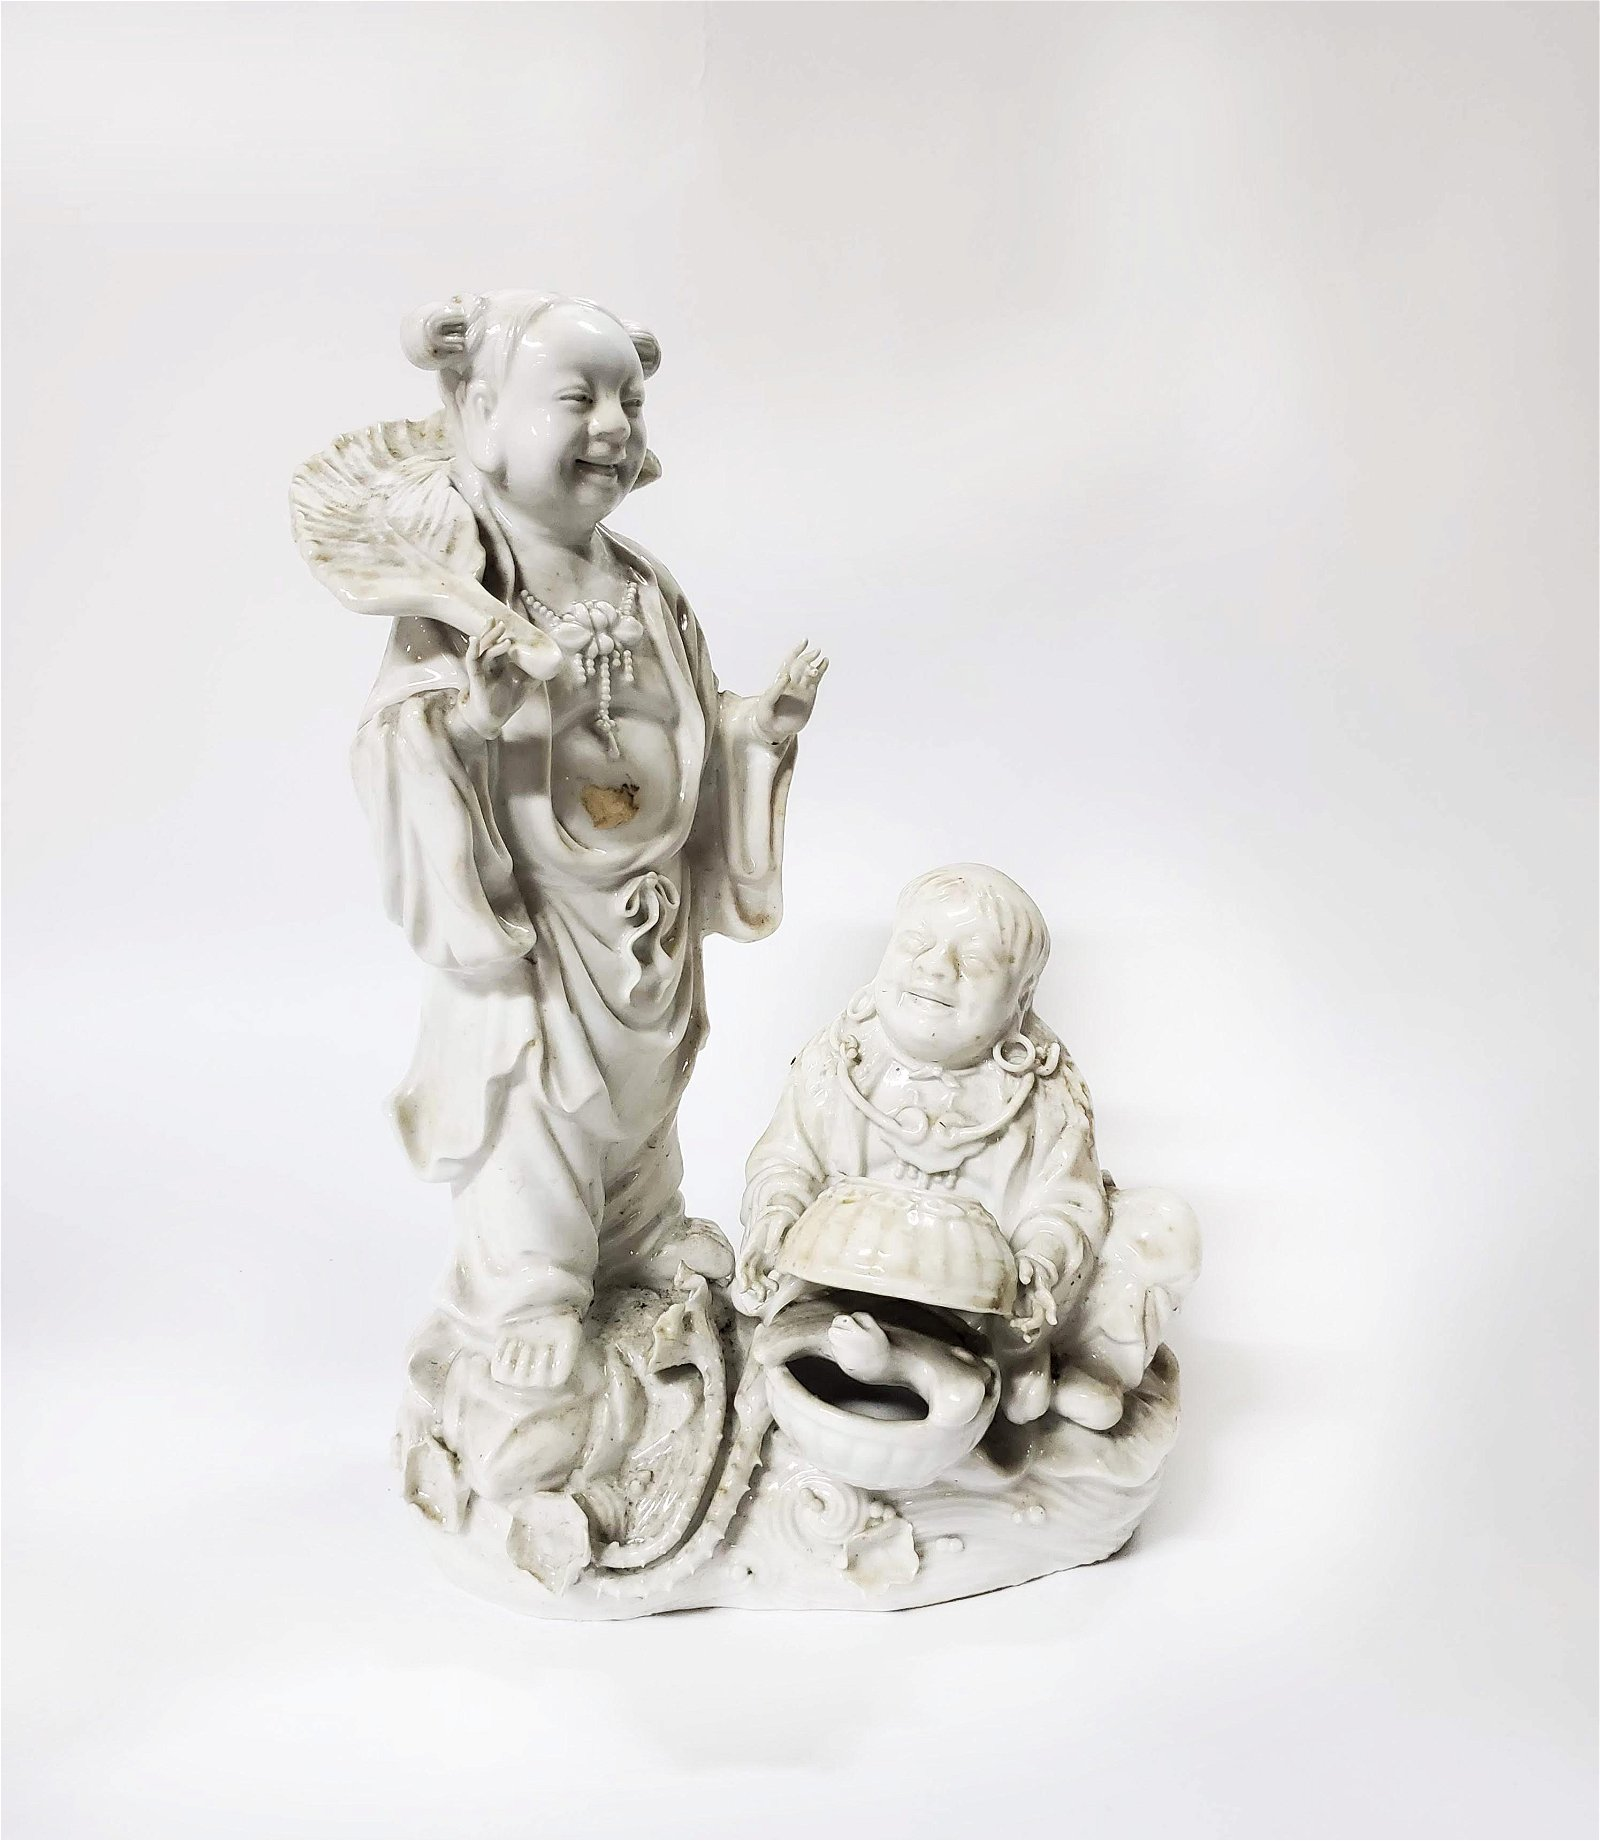 Chinese Chine de Blanc Figural Group